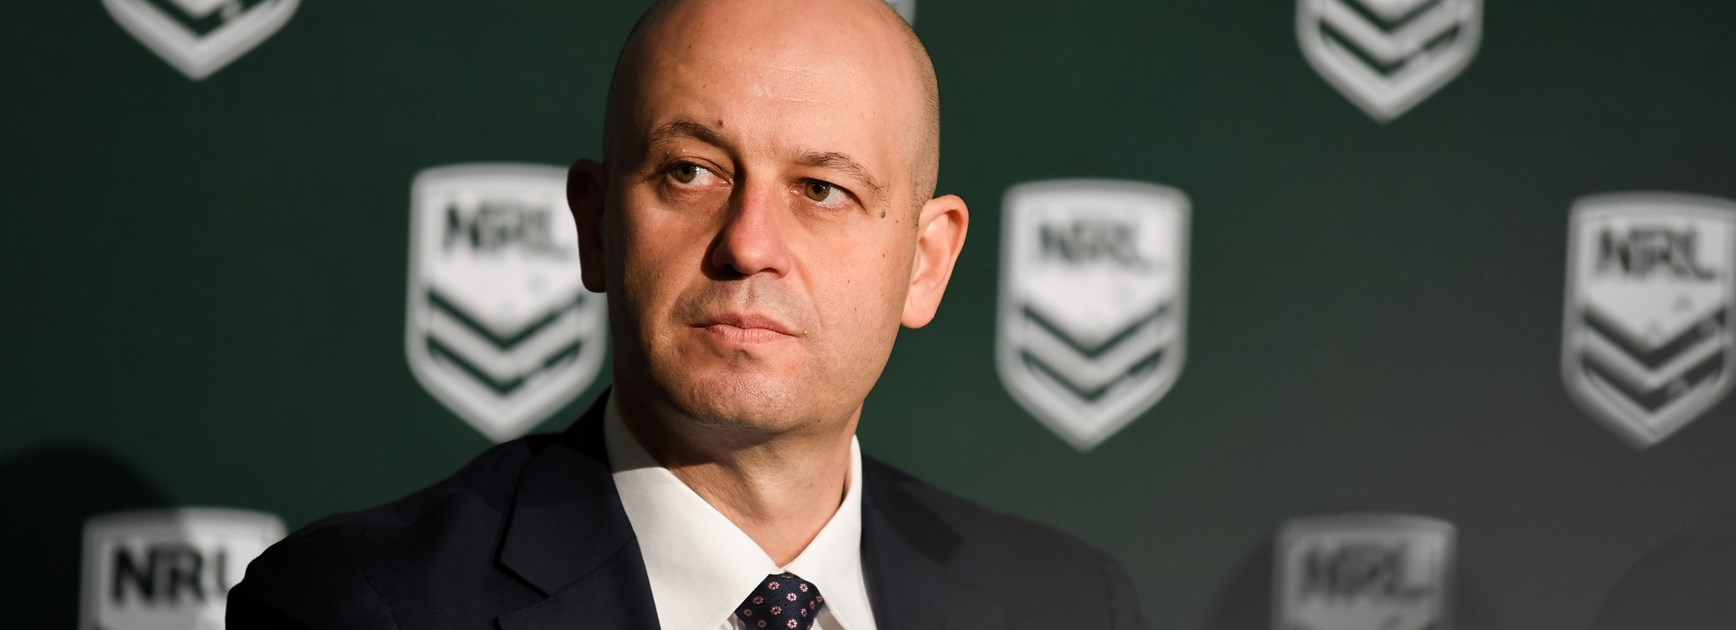 Greenberg vents frustrations at club CEOs and captains over off-field incidents